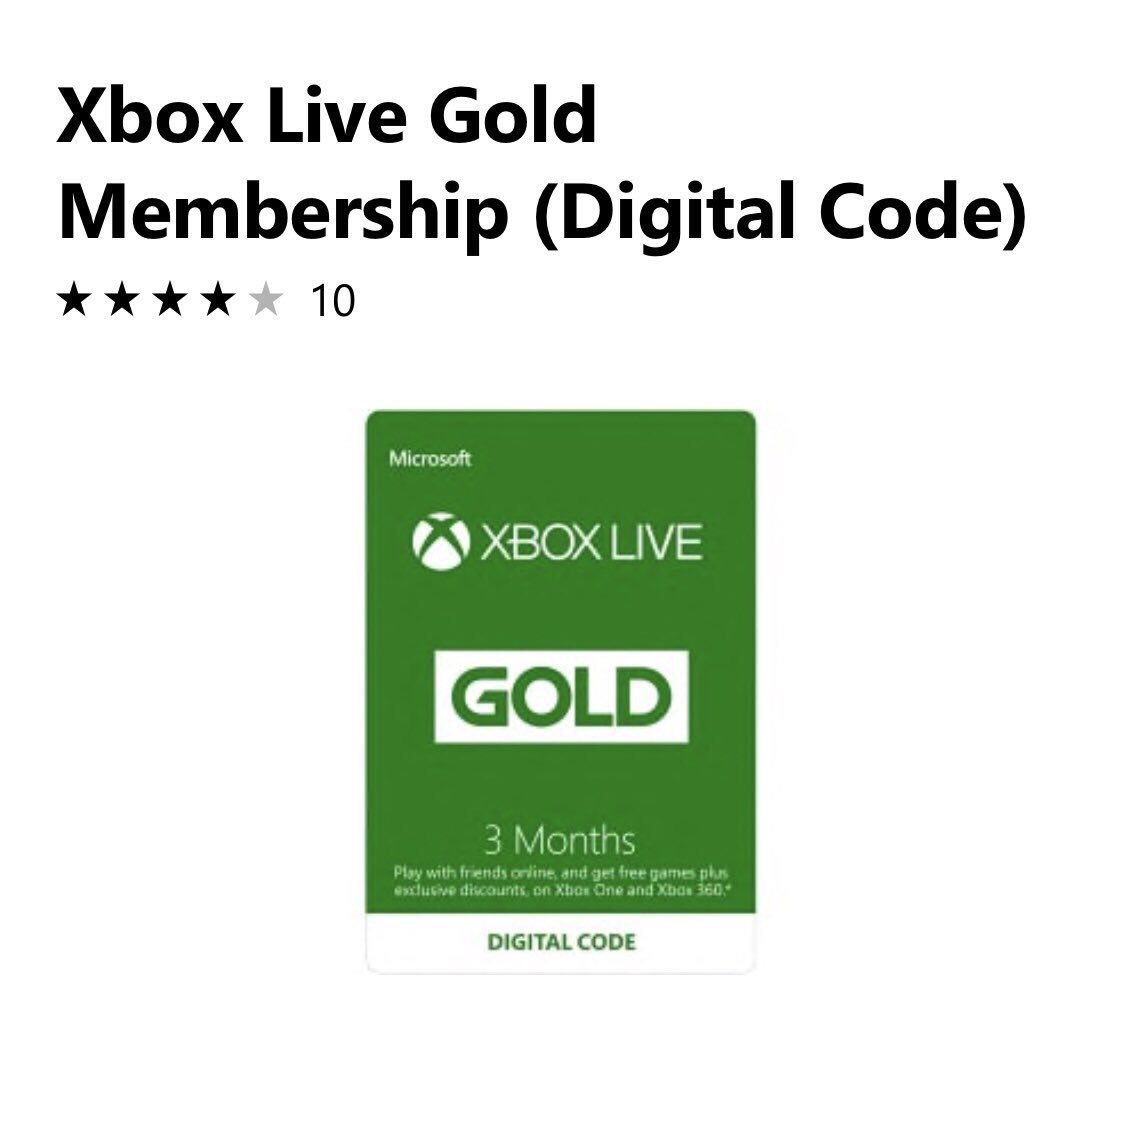 GIVEAWAY TIME** I am giving away a 3 month Xbox Live Gold